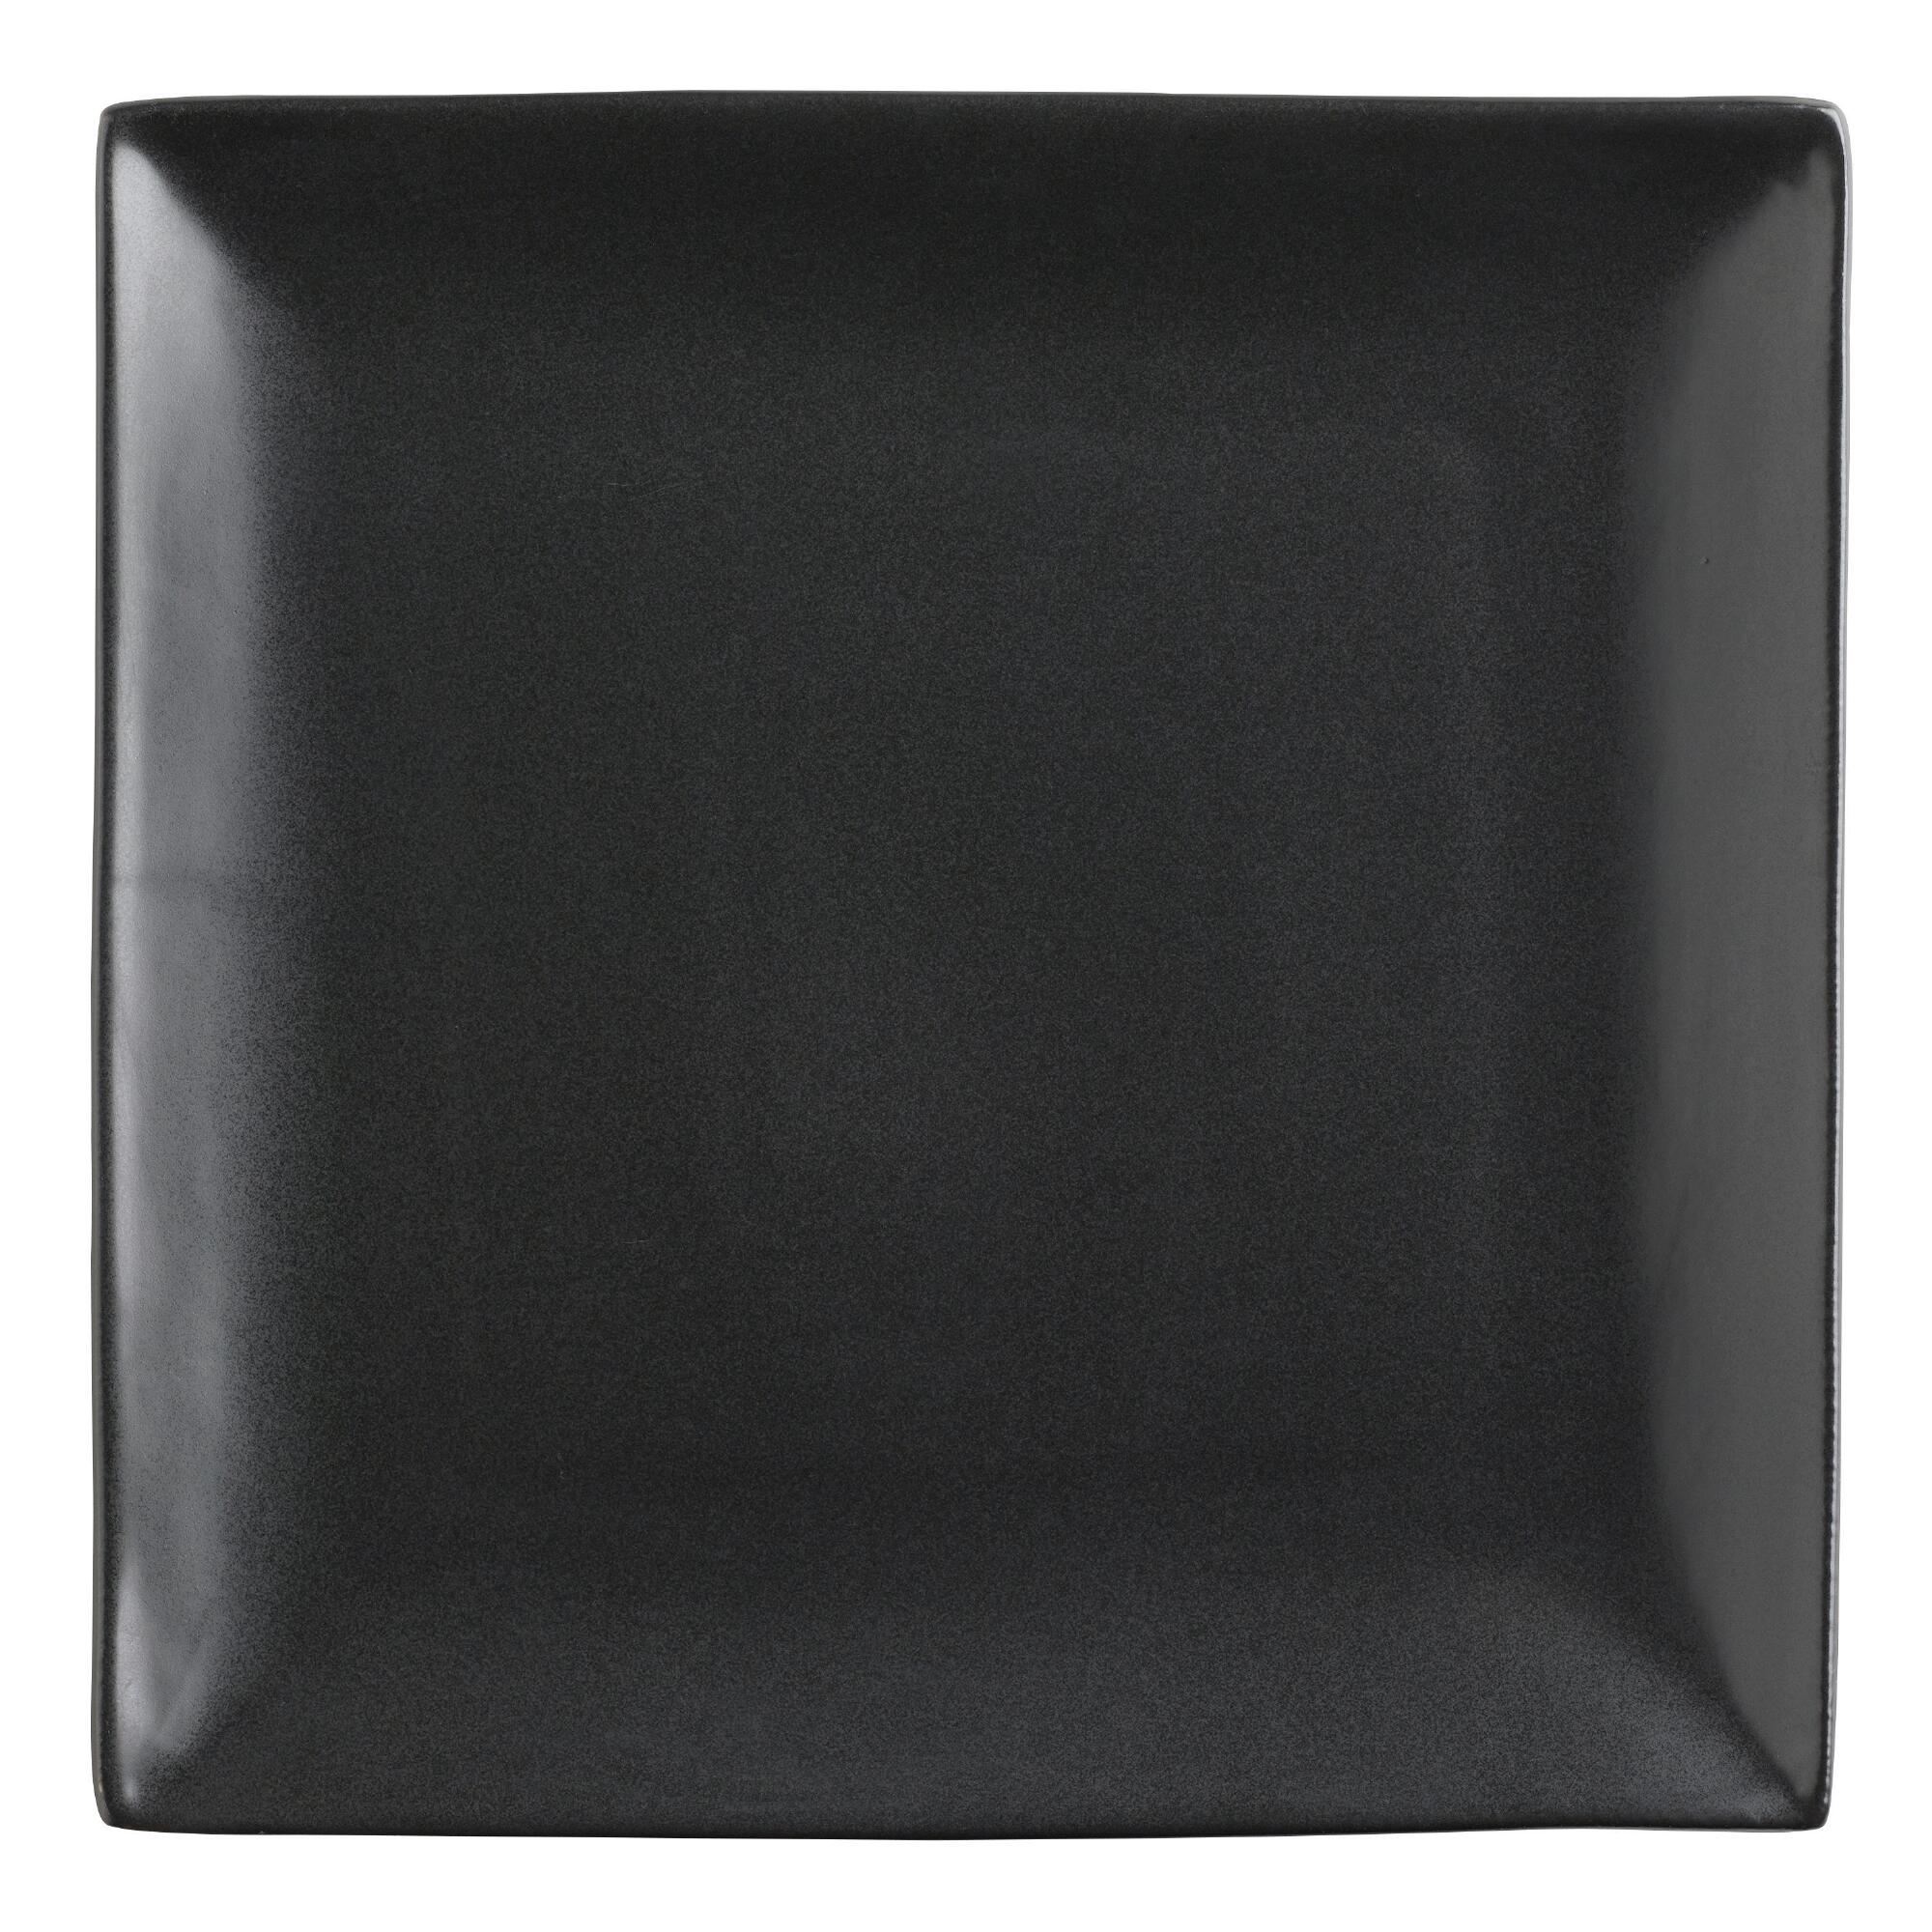 square black trilogy dinner plates set of 4 world market